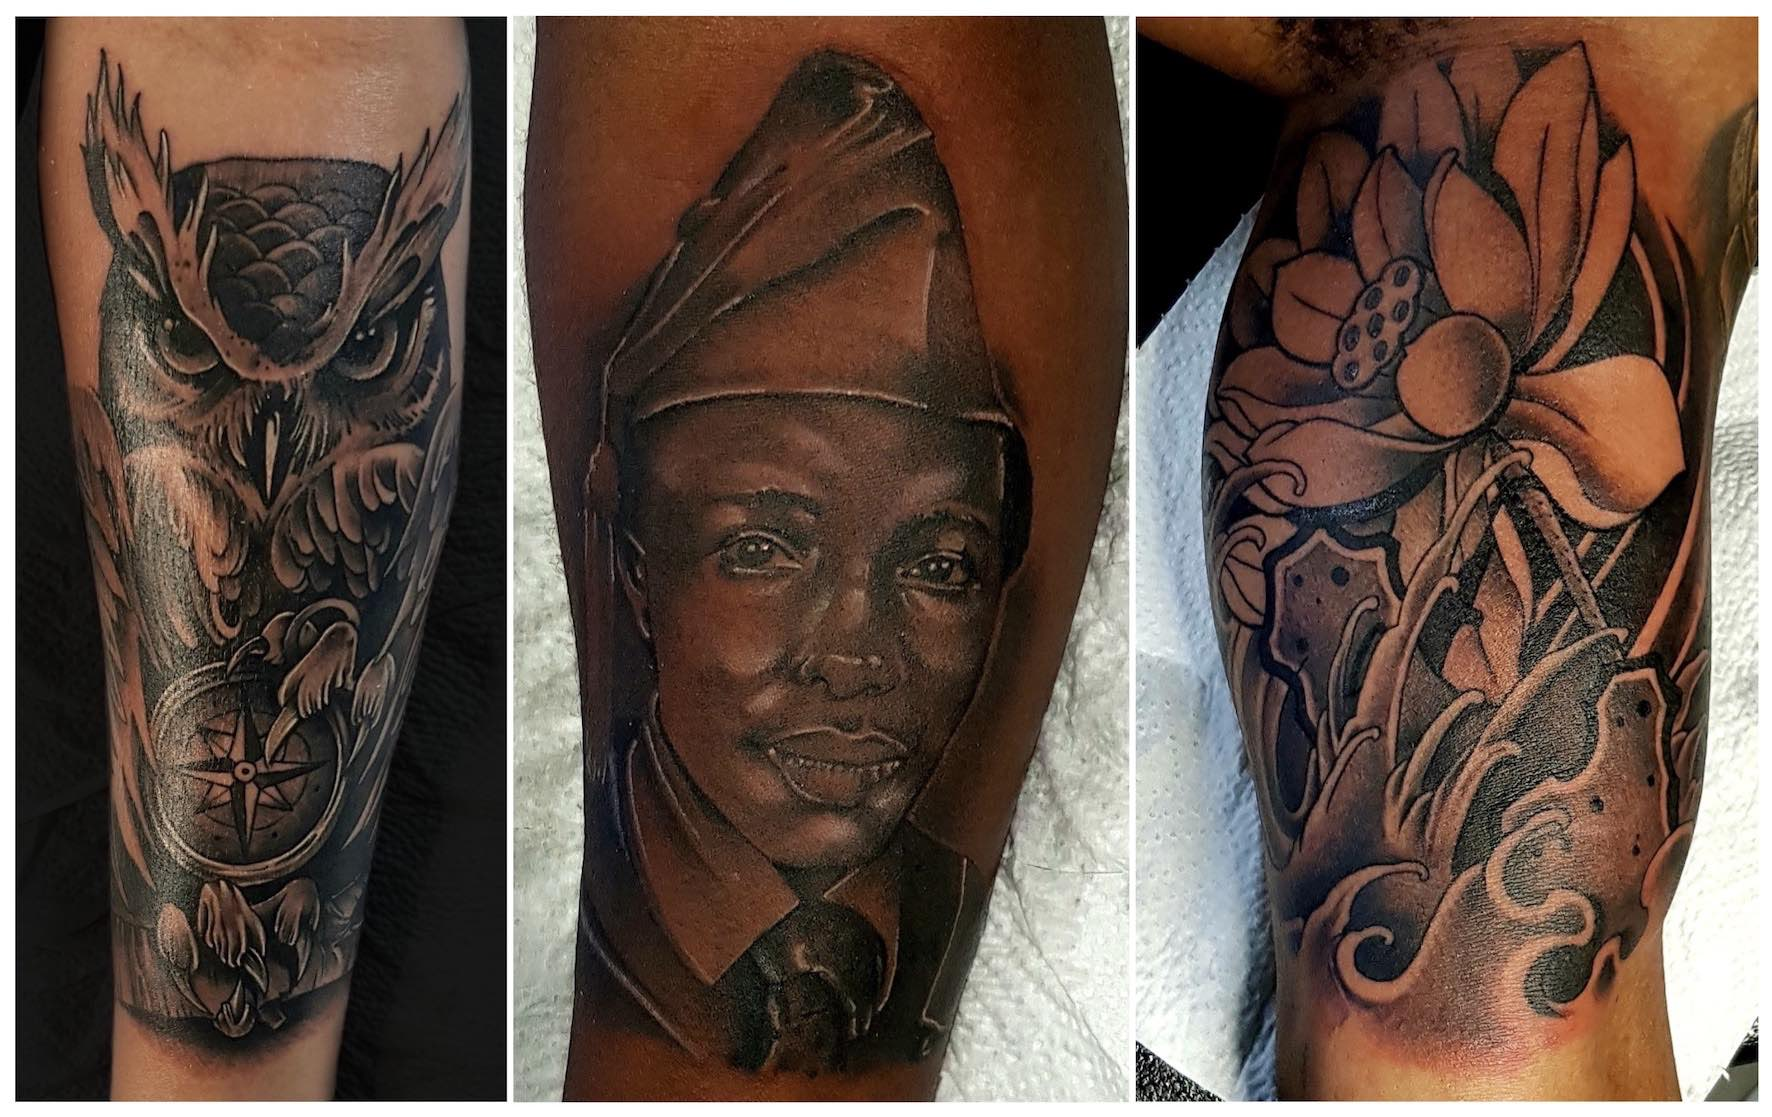 Tattoo work done by Michael Palmer